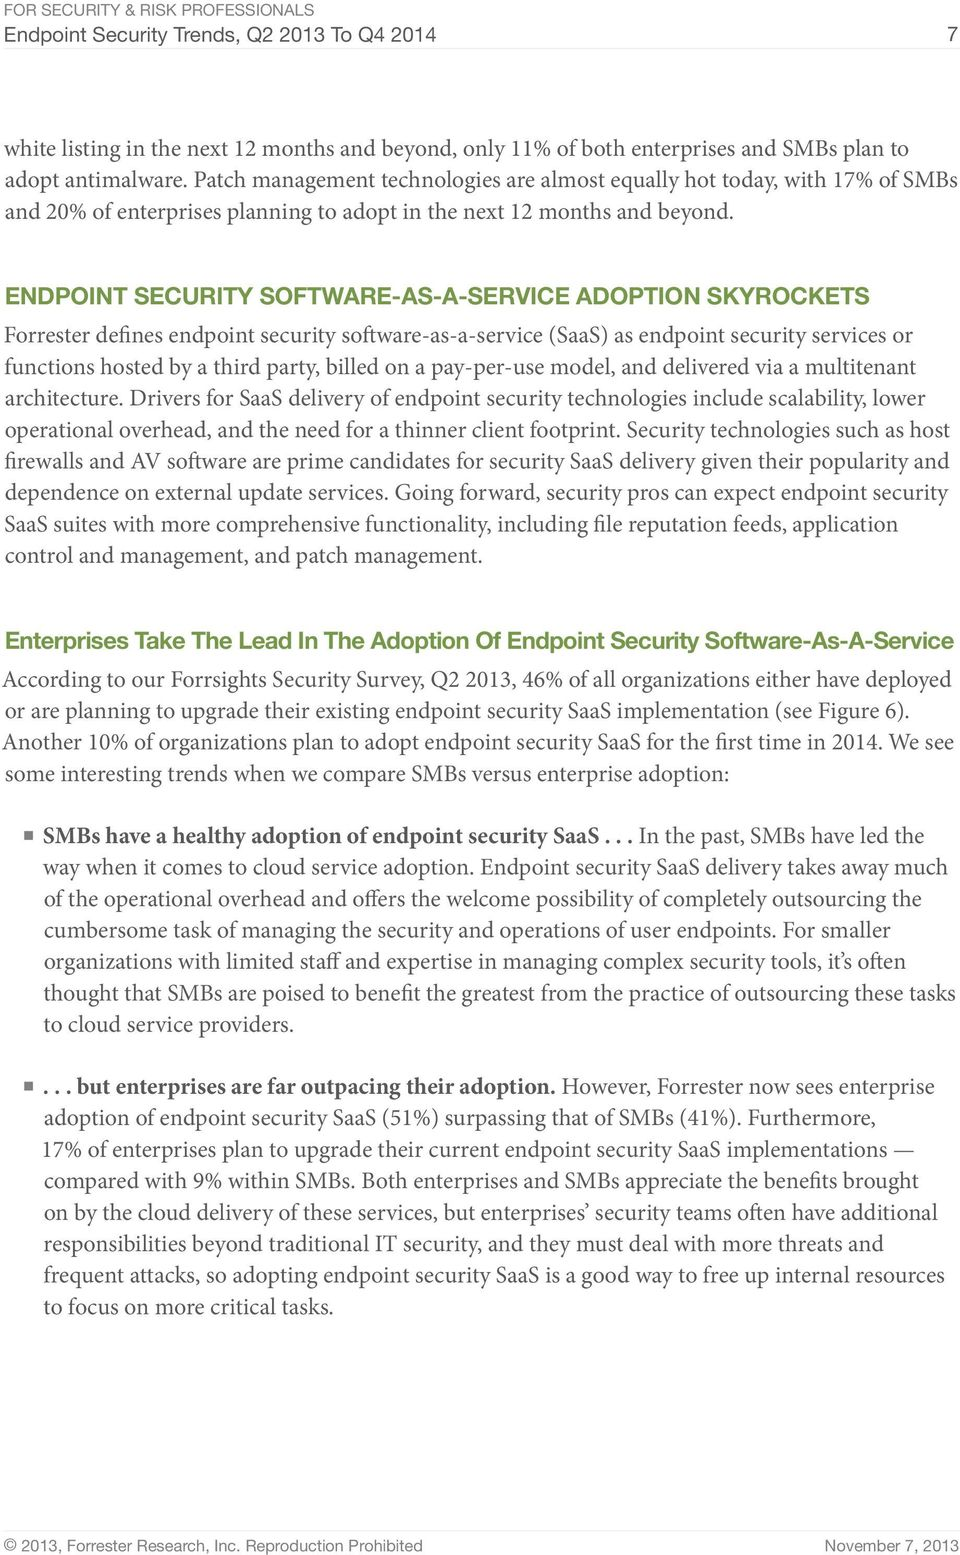 ENDPOINT SECURITY SOFTWARE-AS-A-SERVICE ADOPTION SKYROCKETS Forrester defines endpoint security software-as-a-service (SaaS) as endpoint security services or functions hosted by a third party, billed